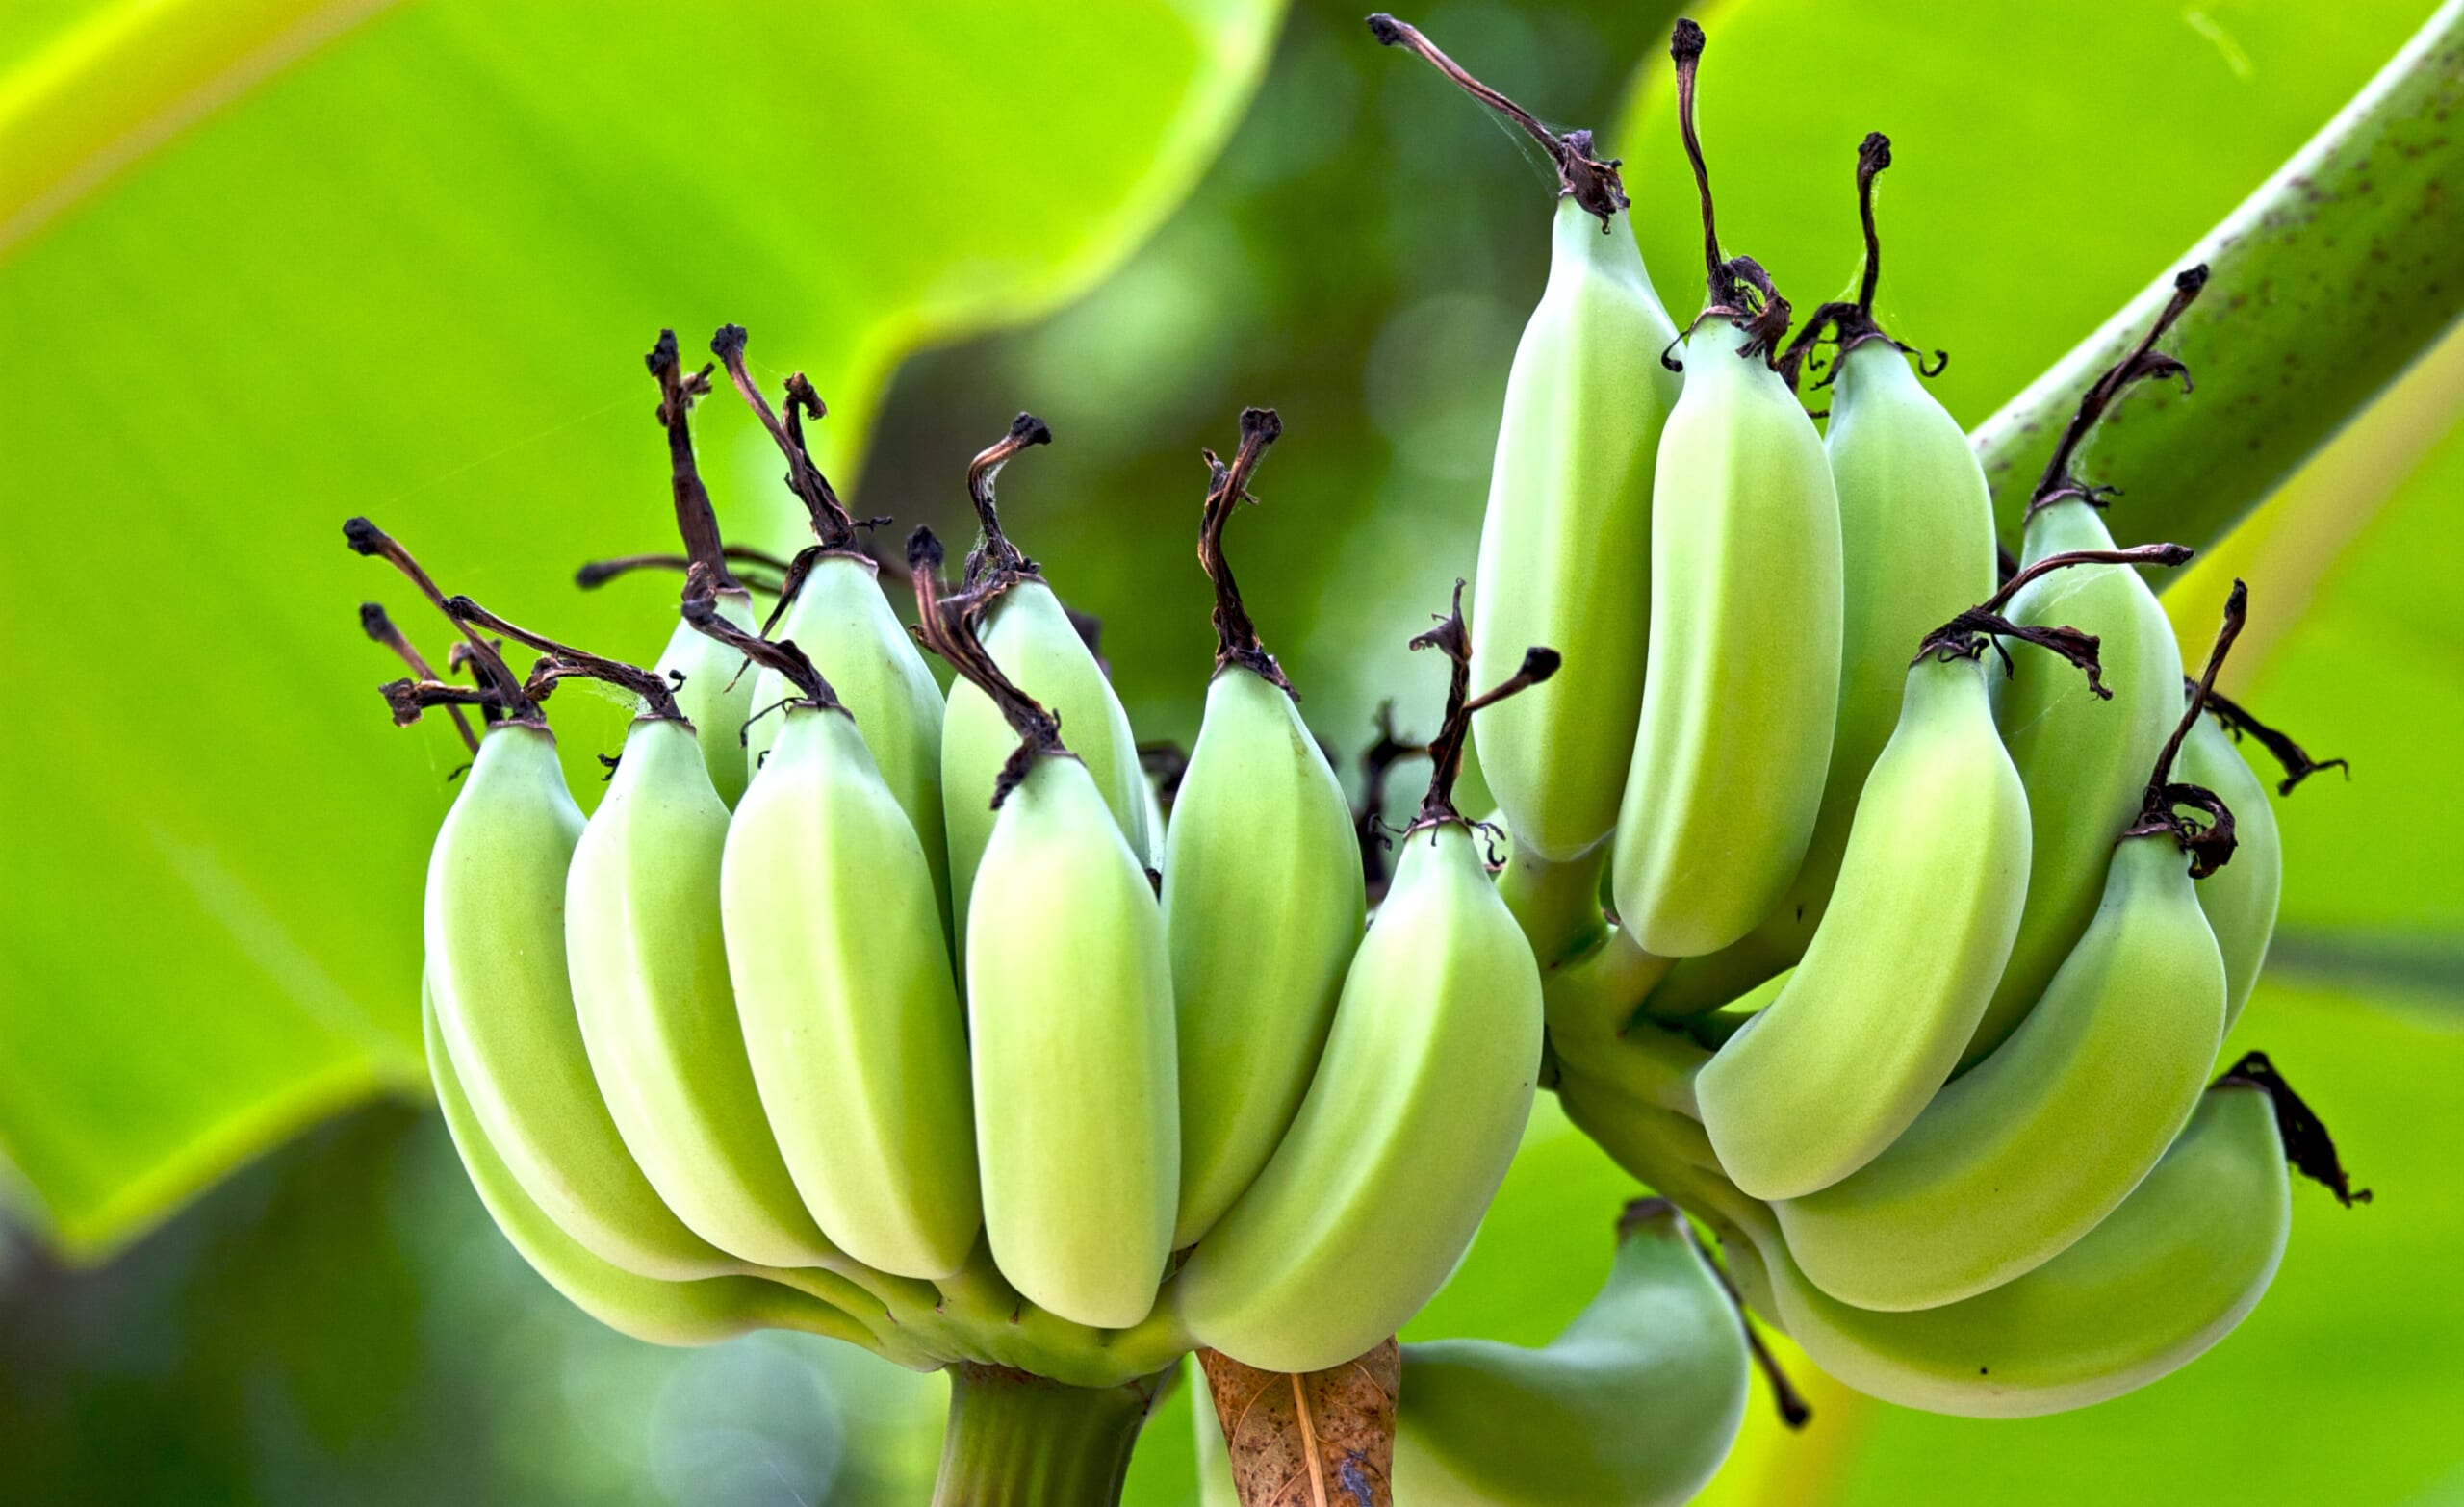 banana_hawaii